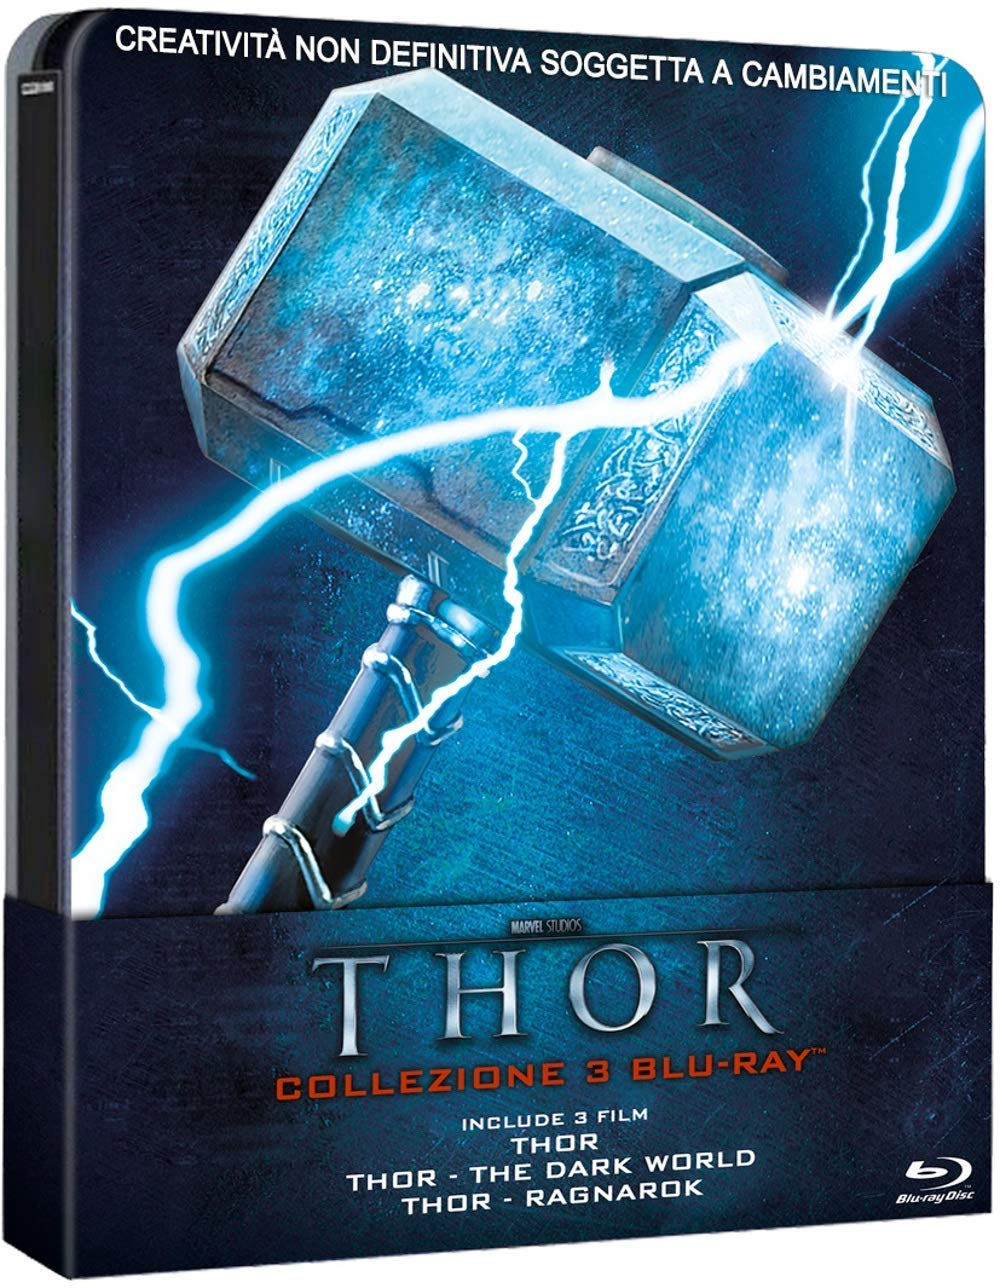 COF.THOR TRILOGY (3 BLU-RAY) (STEELBOOK)